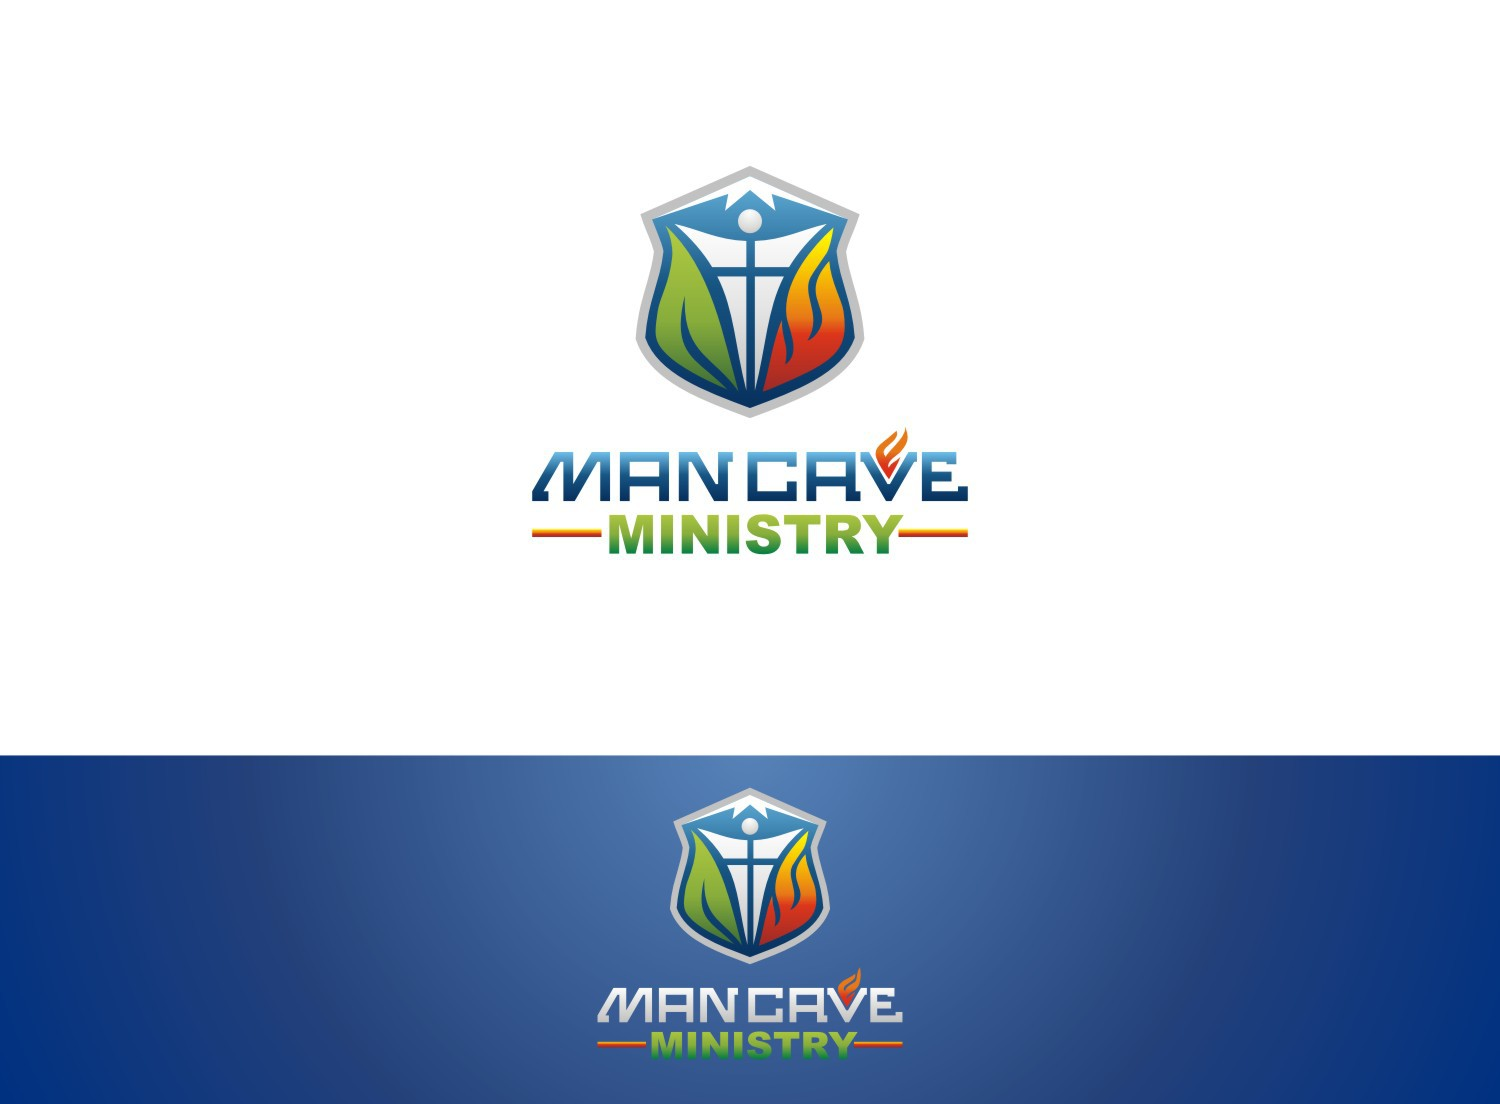 New logo wanted for Man Cave Ministry